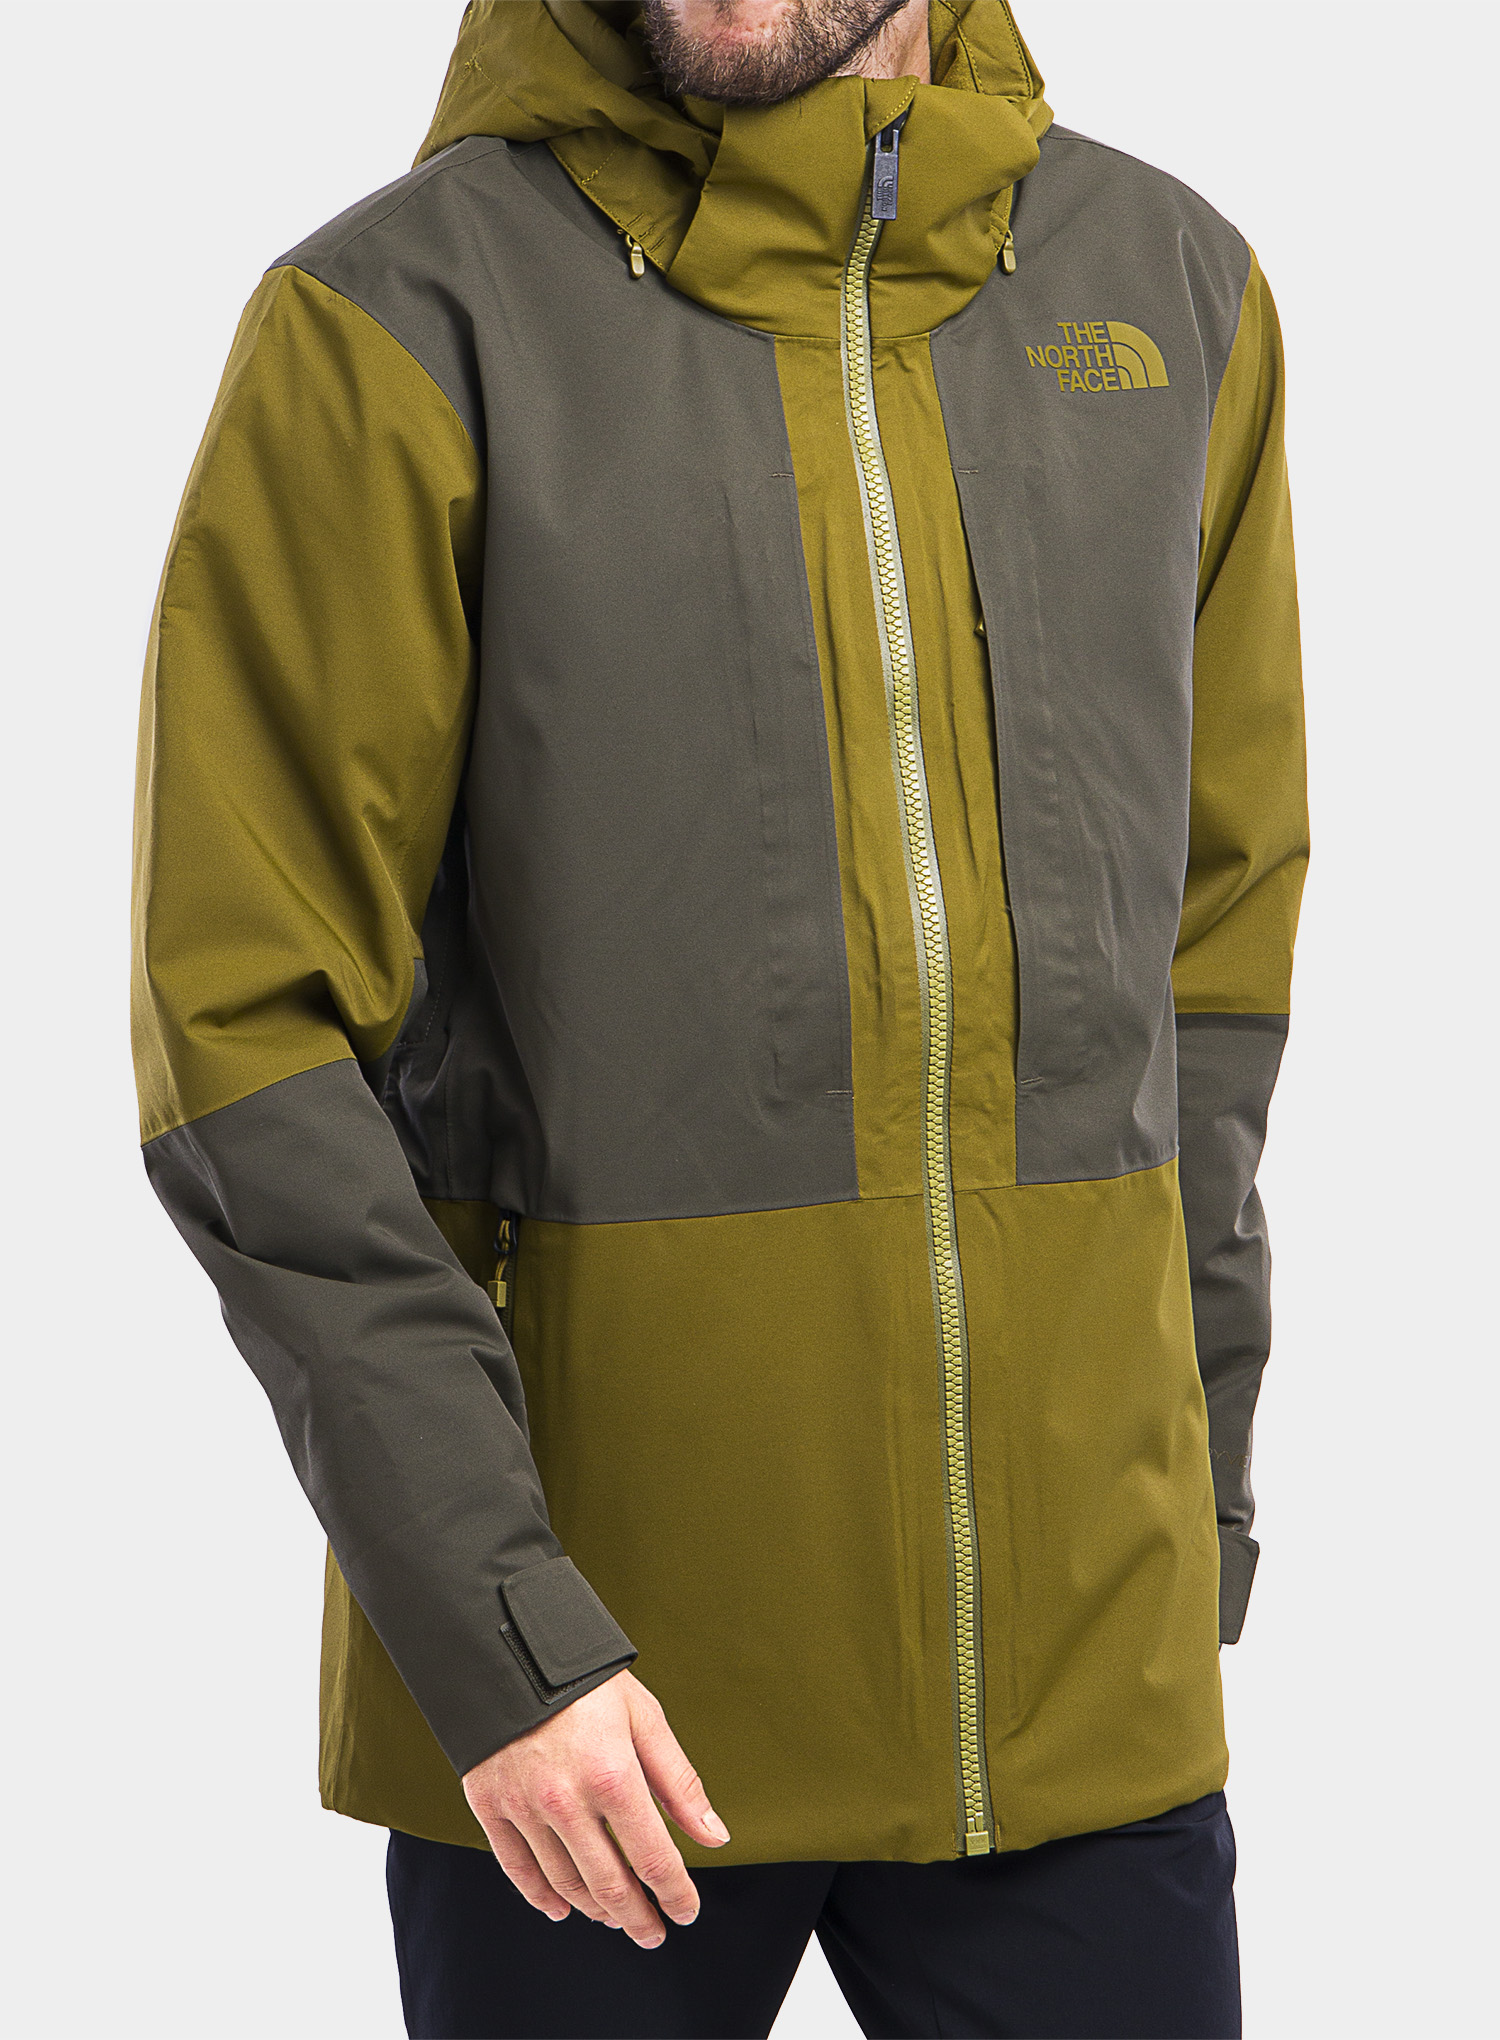 Kurtka The North Face Chakal Jacket - fir green/new taupe green - zdjęcie nr. 1